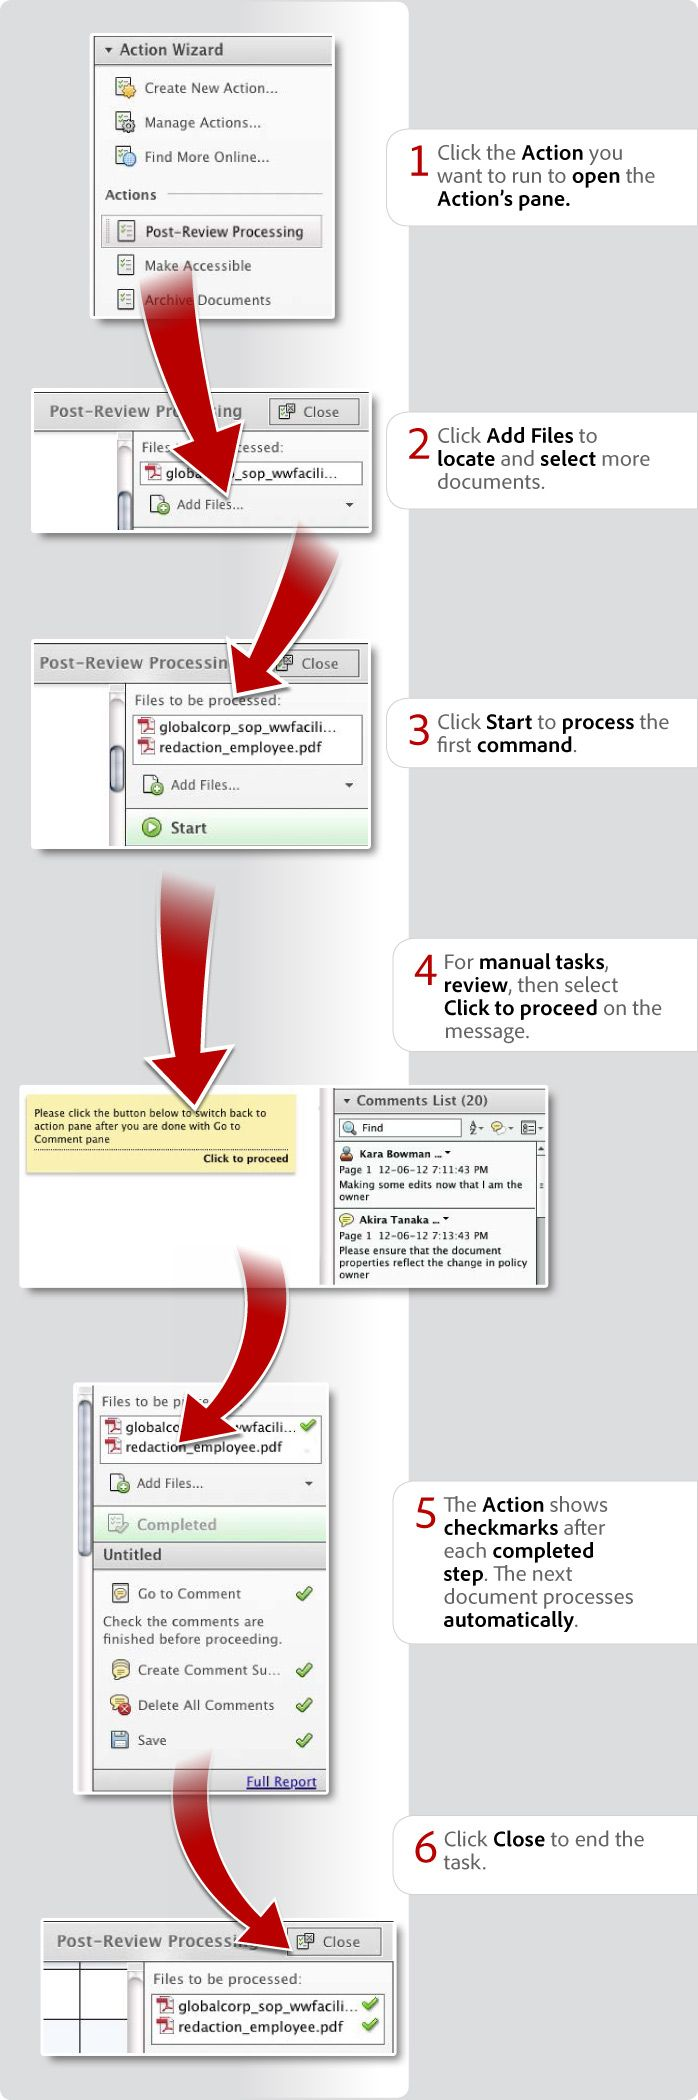 52 best Adobe Acrobat Pro images on Pinterest | Adobe acrobat, Pdf ...